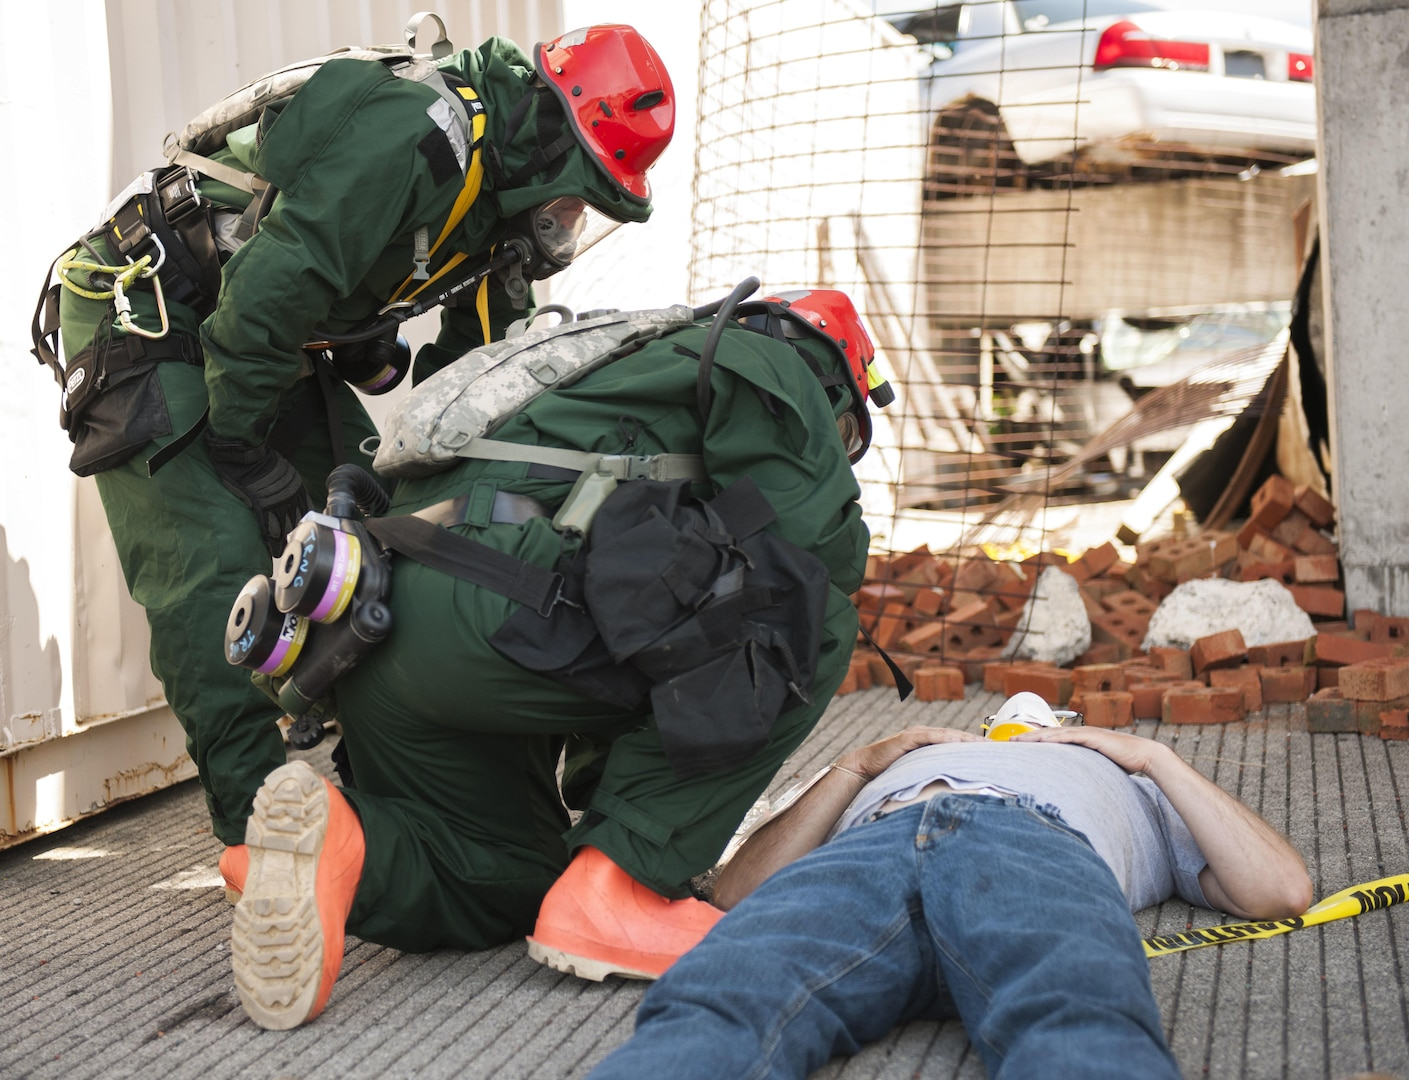 Members of the New York  Army National Guard train as a rope rescue team assisting a simulated disaster victim at the State Preparedness Training Center in Oriskany NY on June 16, 2016.  This was part of a training scenario hosted by the training center preparing members of New York's Homeland Response Force team made up of New York Air and Army National Guard members and civilians.